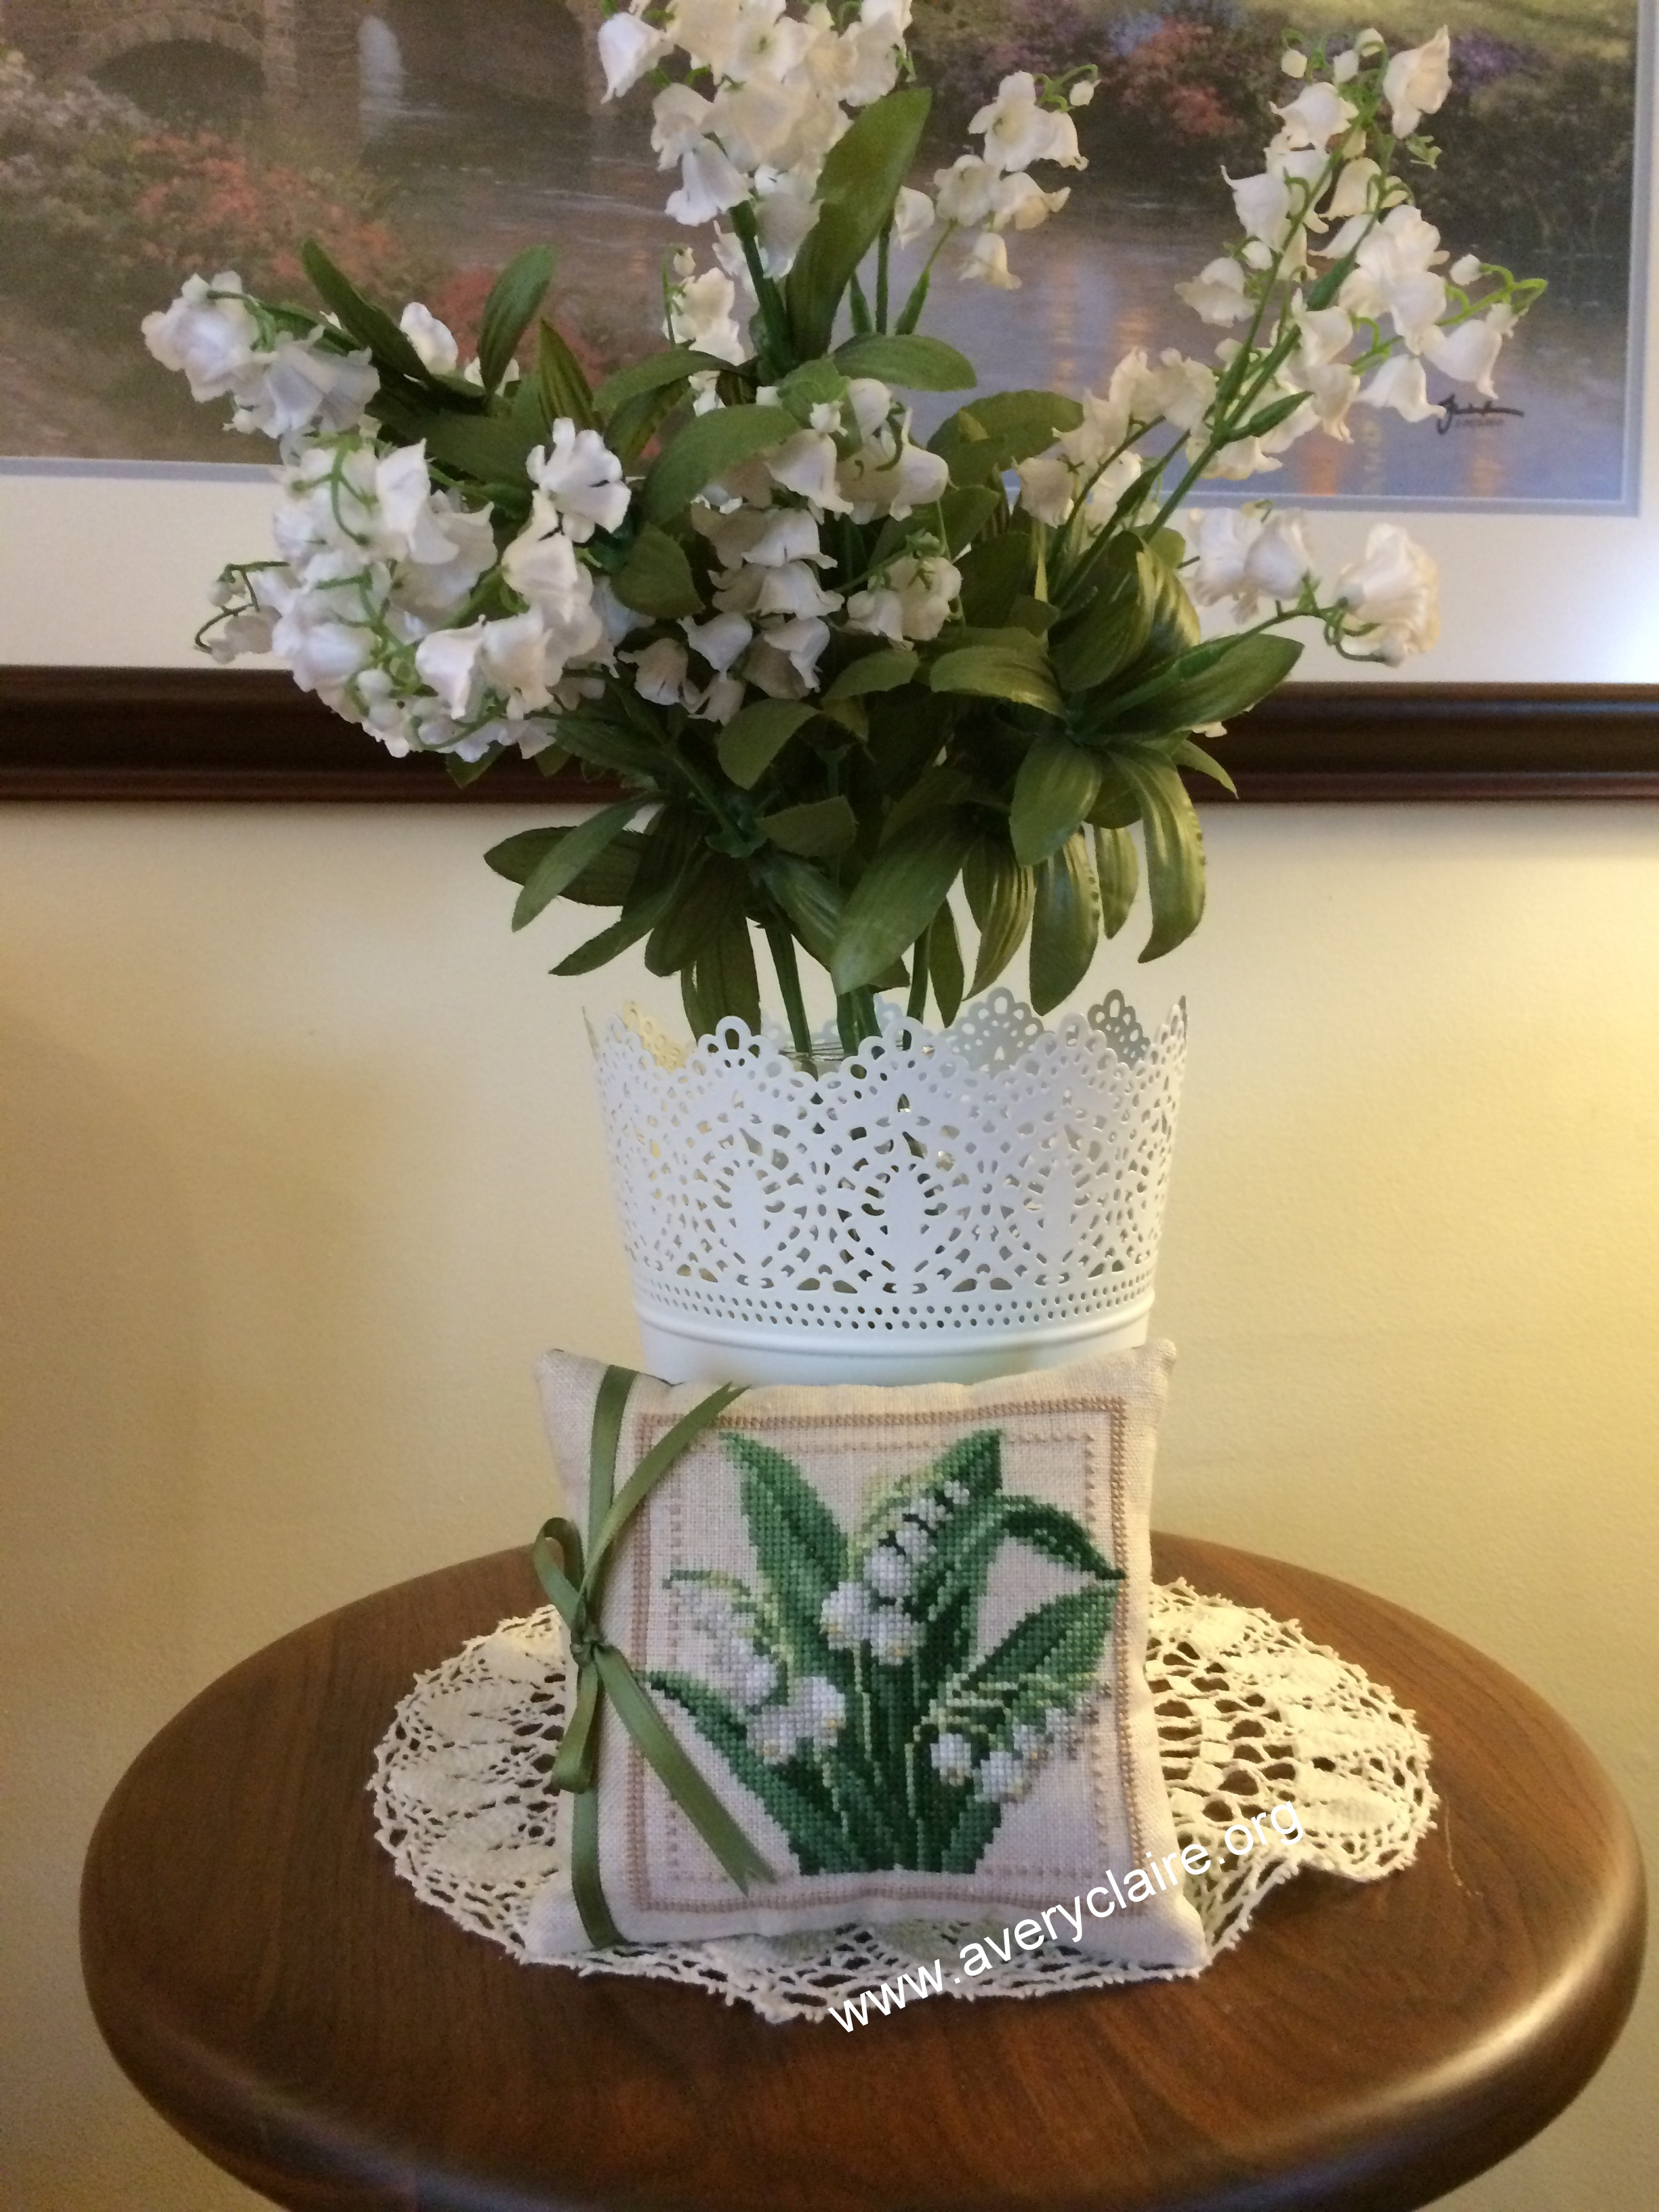 Lily of the valley averyclaire 2015 april karens work lily of the valley 005 reviewsmspy